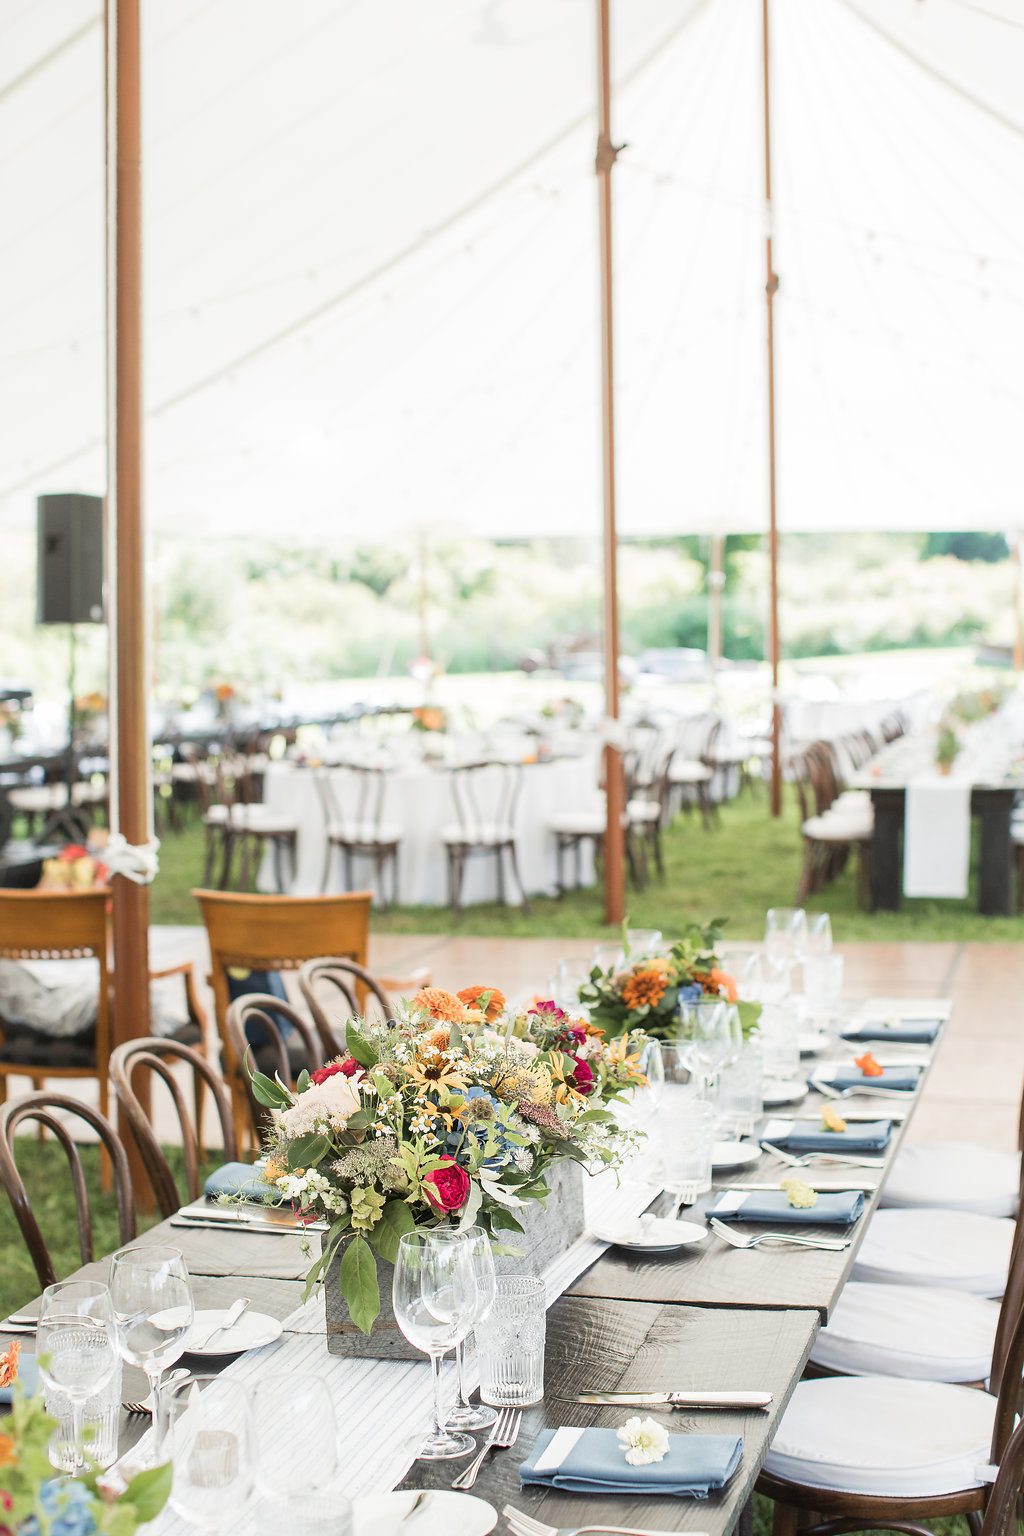 Monica-Relyea-Events-Kelsey-Combe-Photography-Dana-and-Mark-South-Farms-wedding-morris-connecticut-barn-tent-jewish-farm-country-litchfield-county494